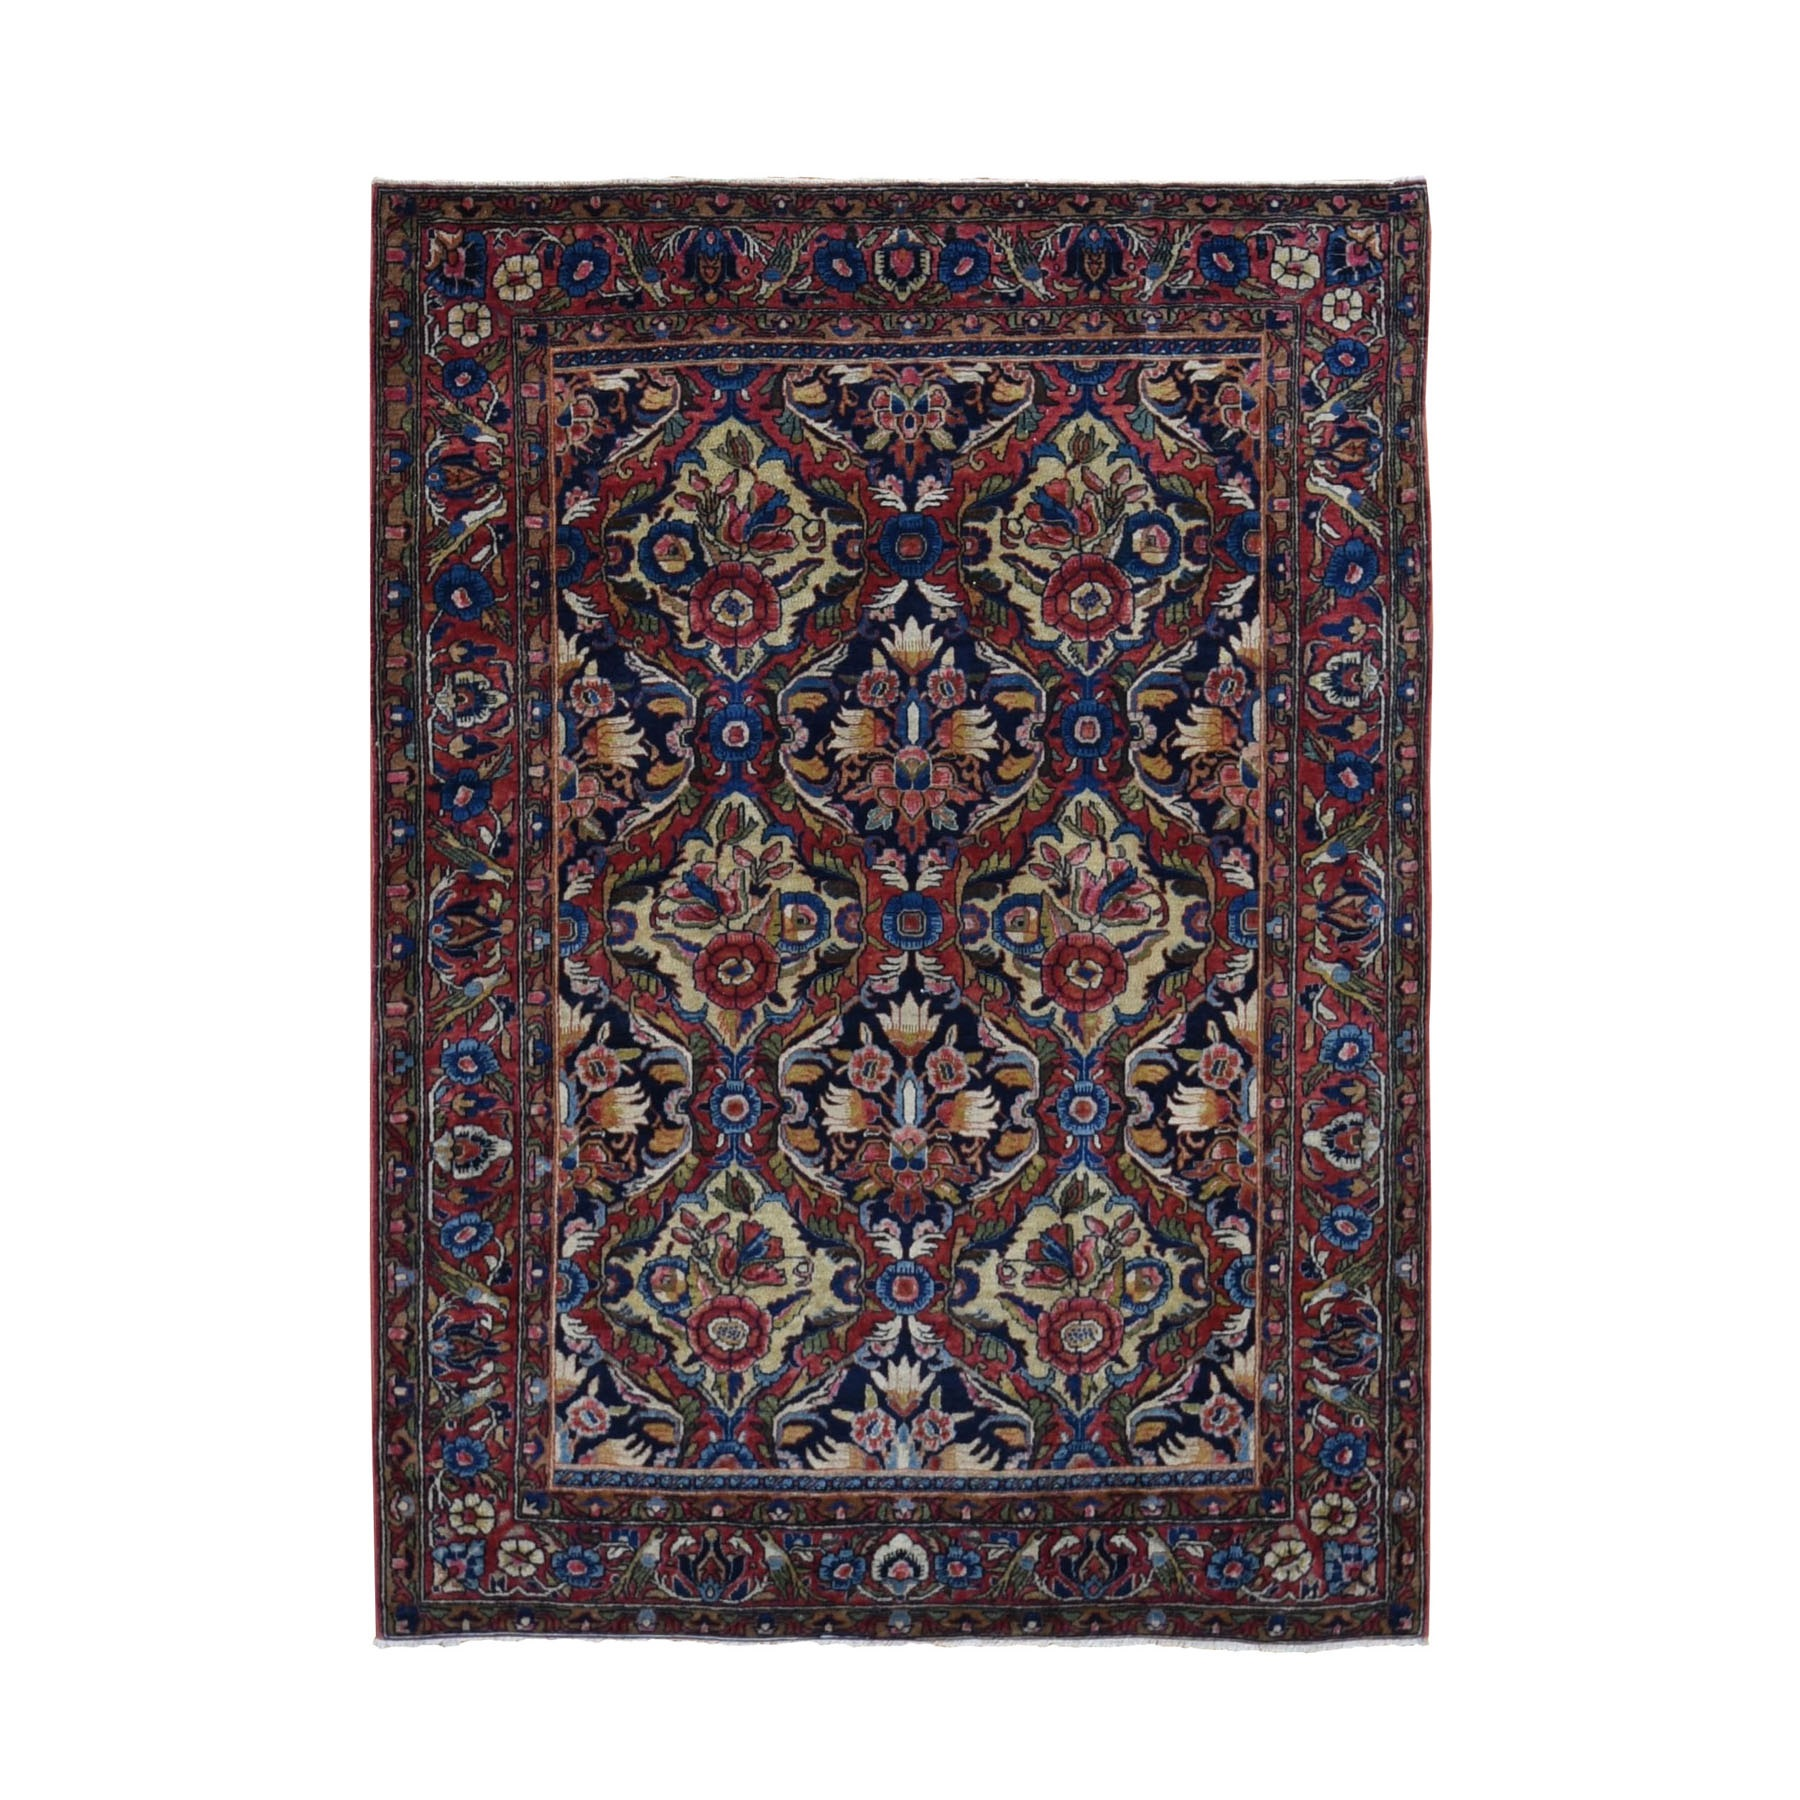 """3'4""""X4'10"""" Red Antique Persian Sarouk Exc Condition Soft Full Pile Hand Knotted Oriental Rug moad90eb"""